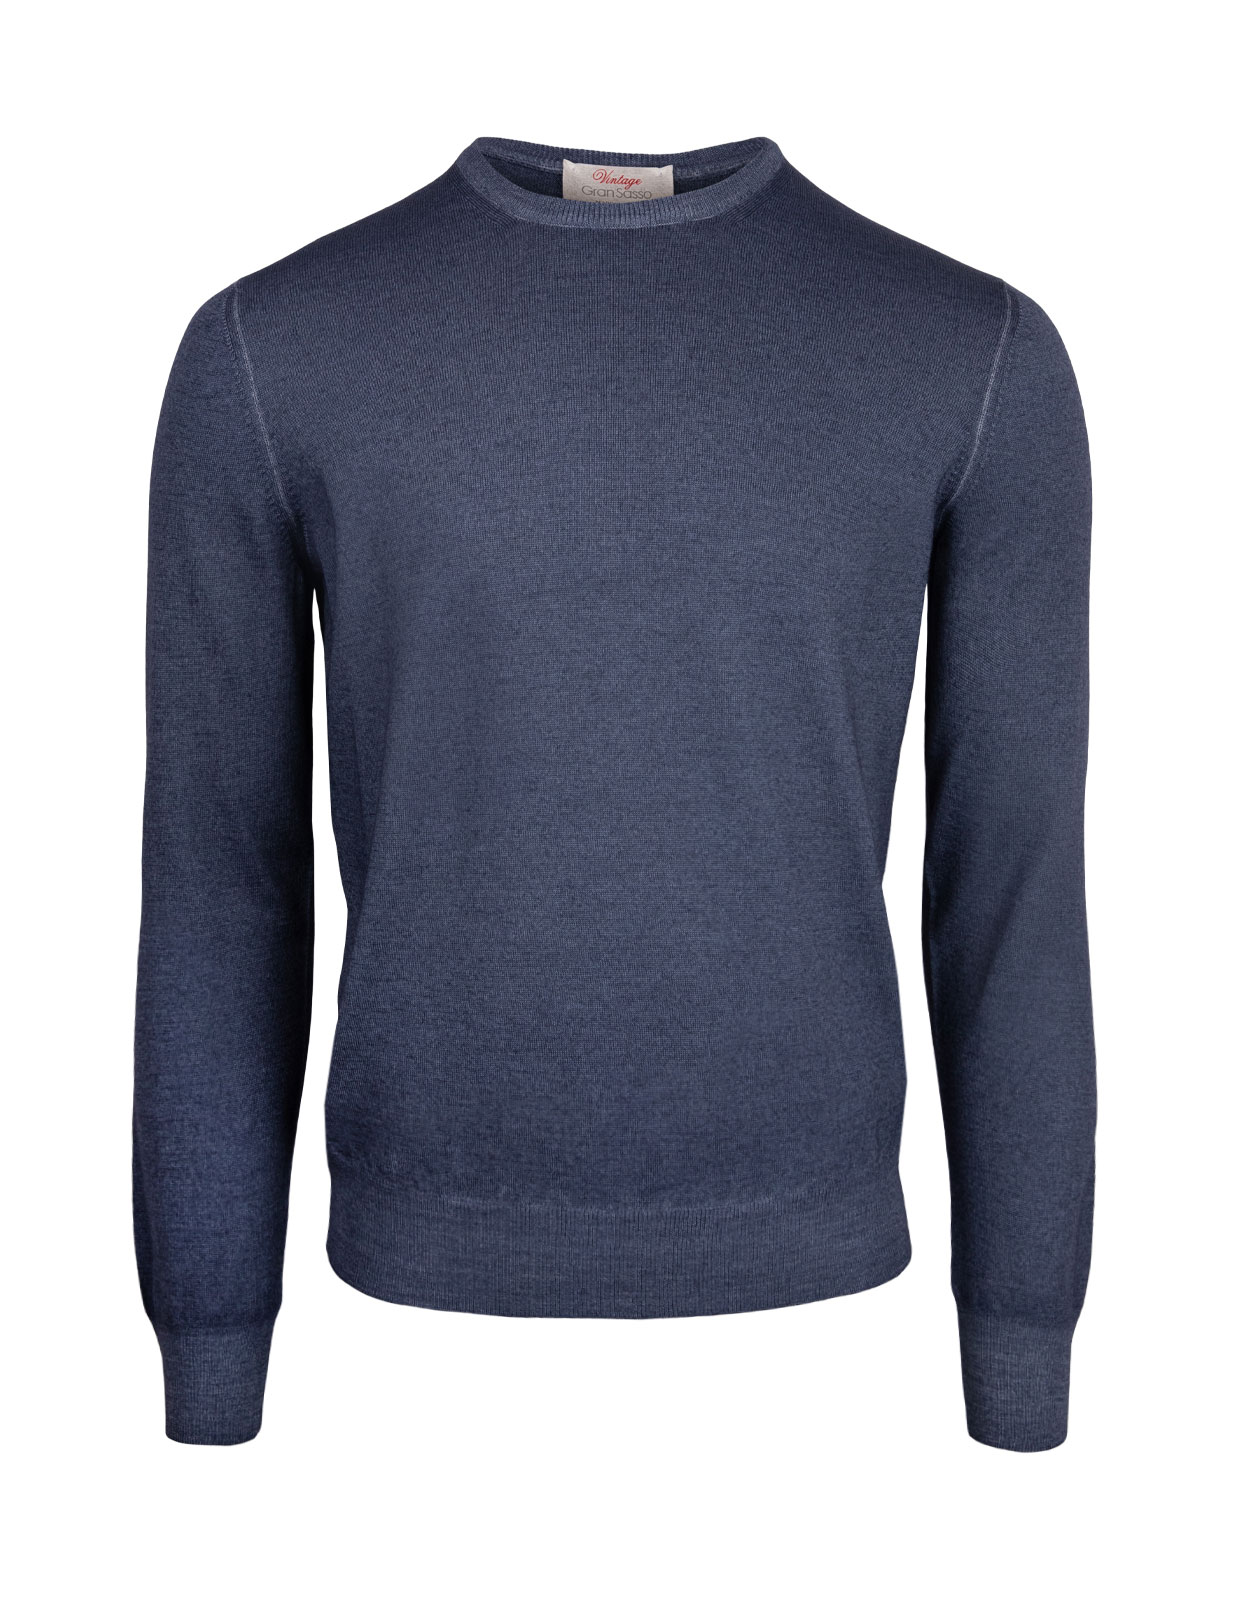 Crew Neck Vintage Summer Merino Ink Blue